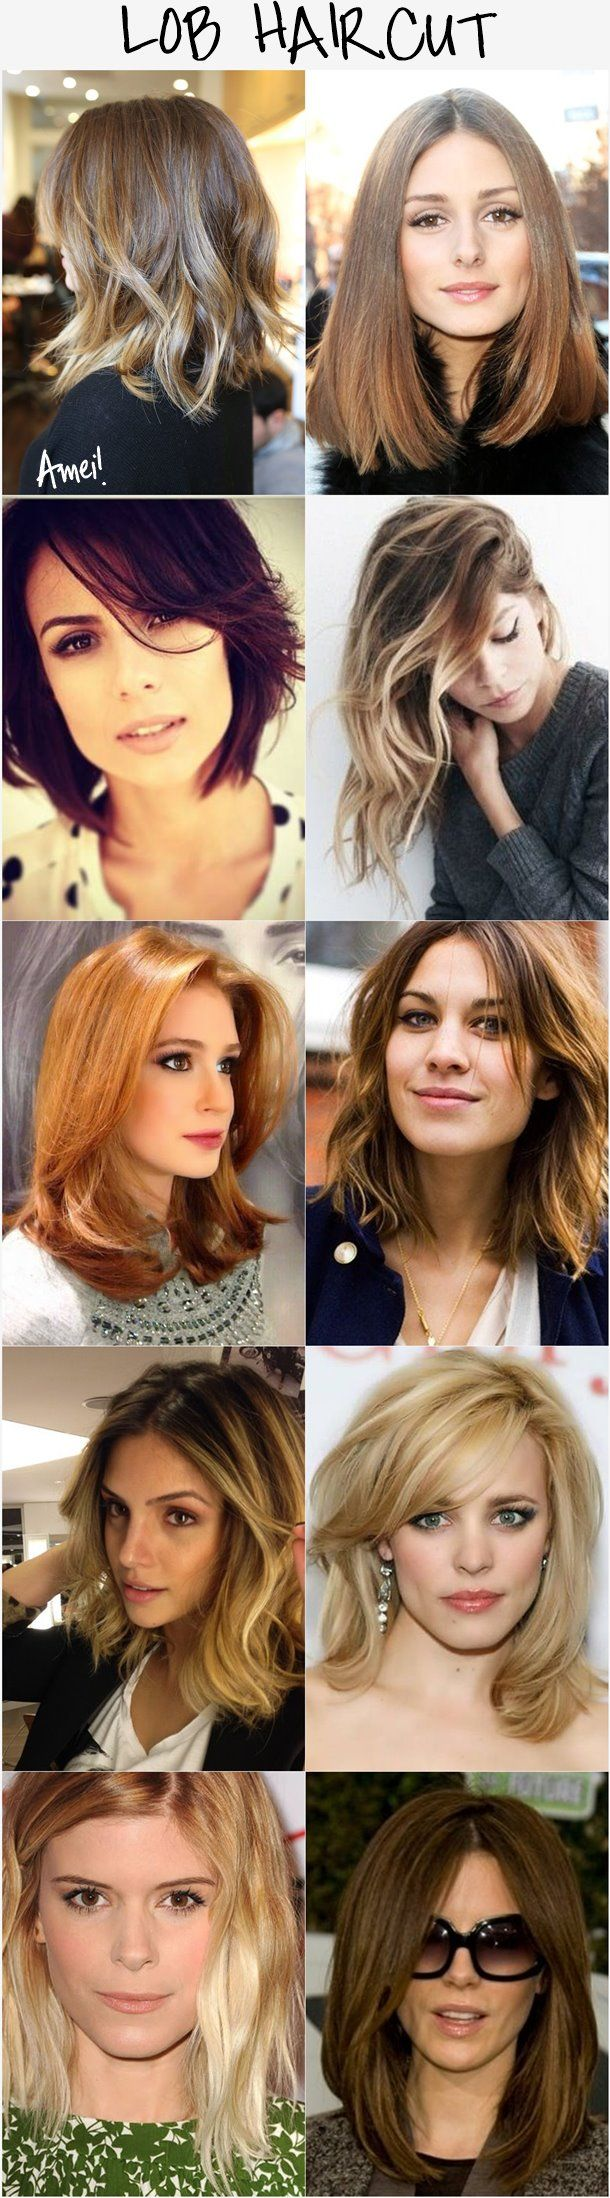 Long bob: o corte de cabelo do momento - My Lifestyle